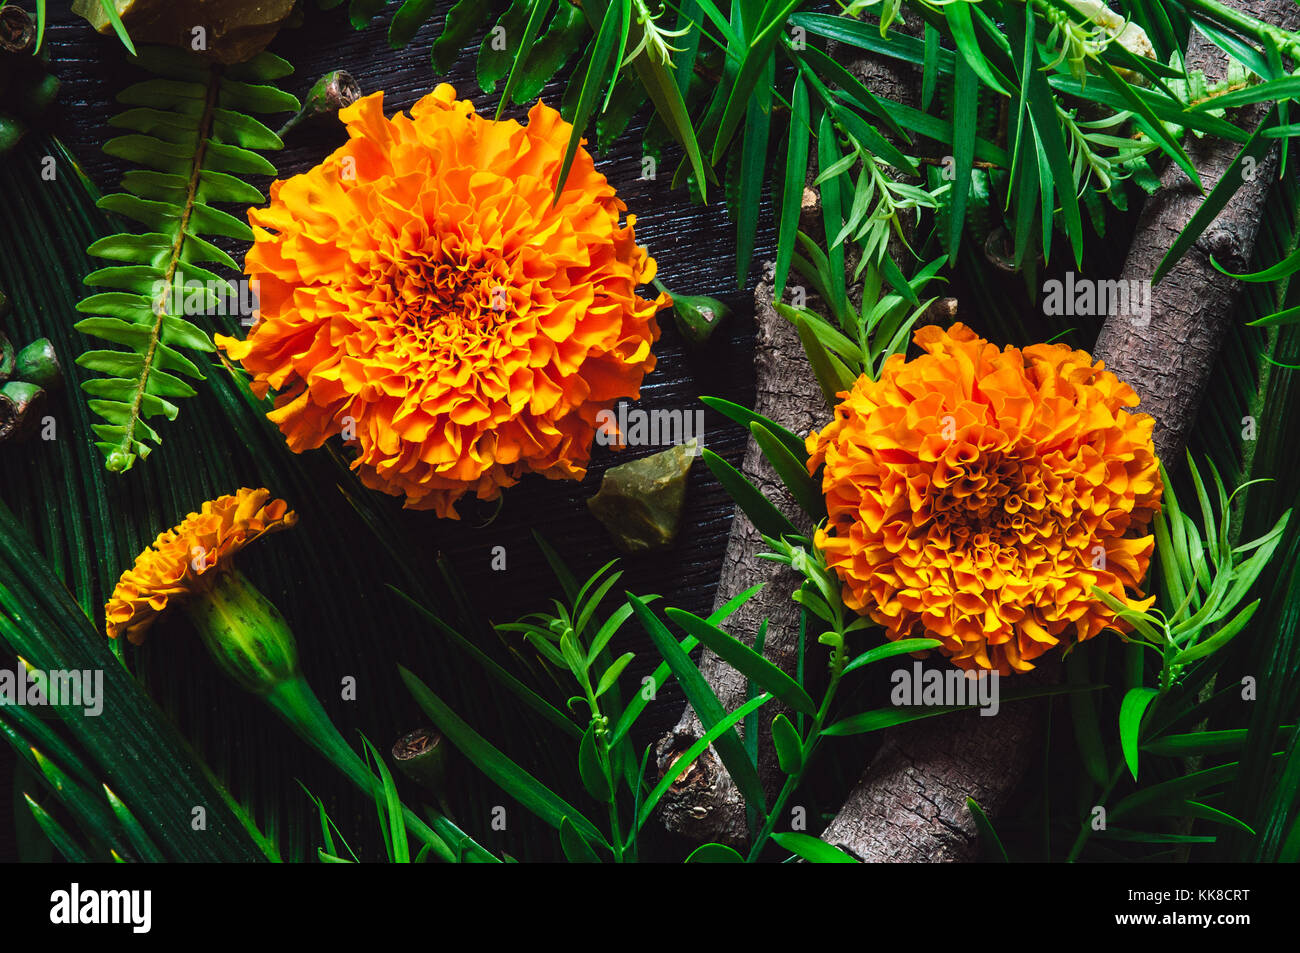 Marigold Flowers with Botanicals and Green Opal - Stock Image